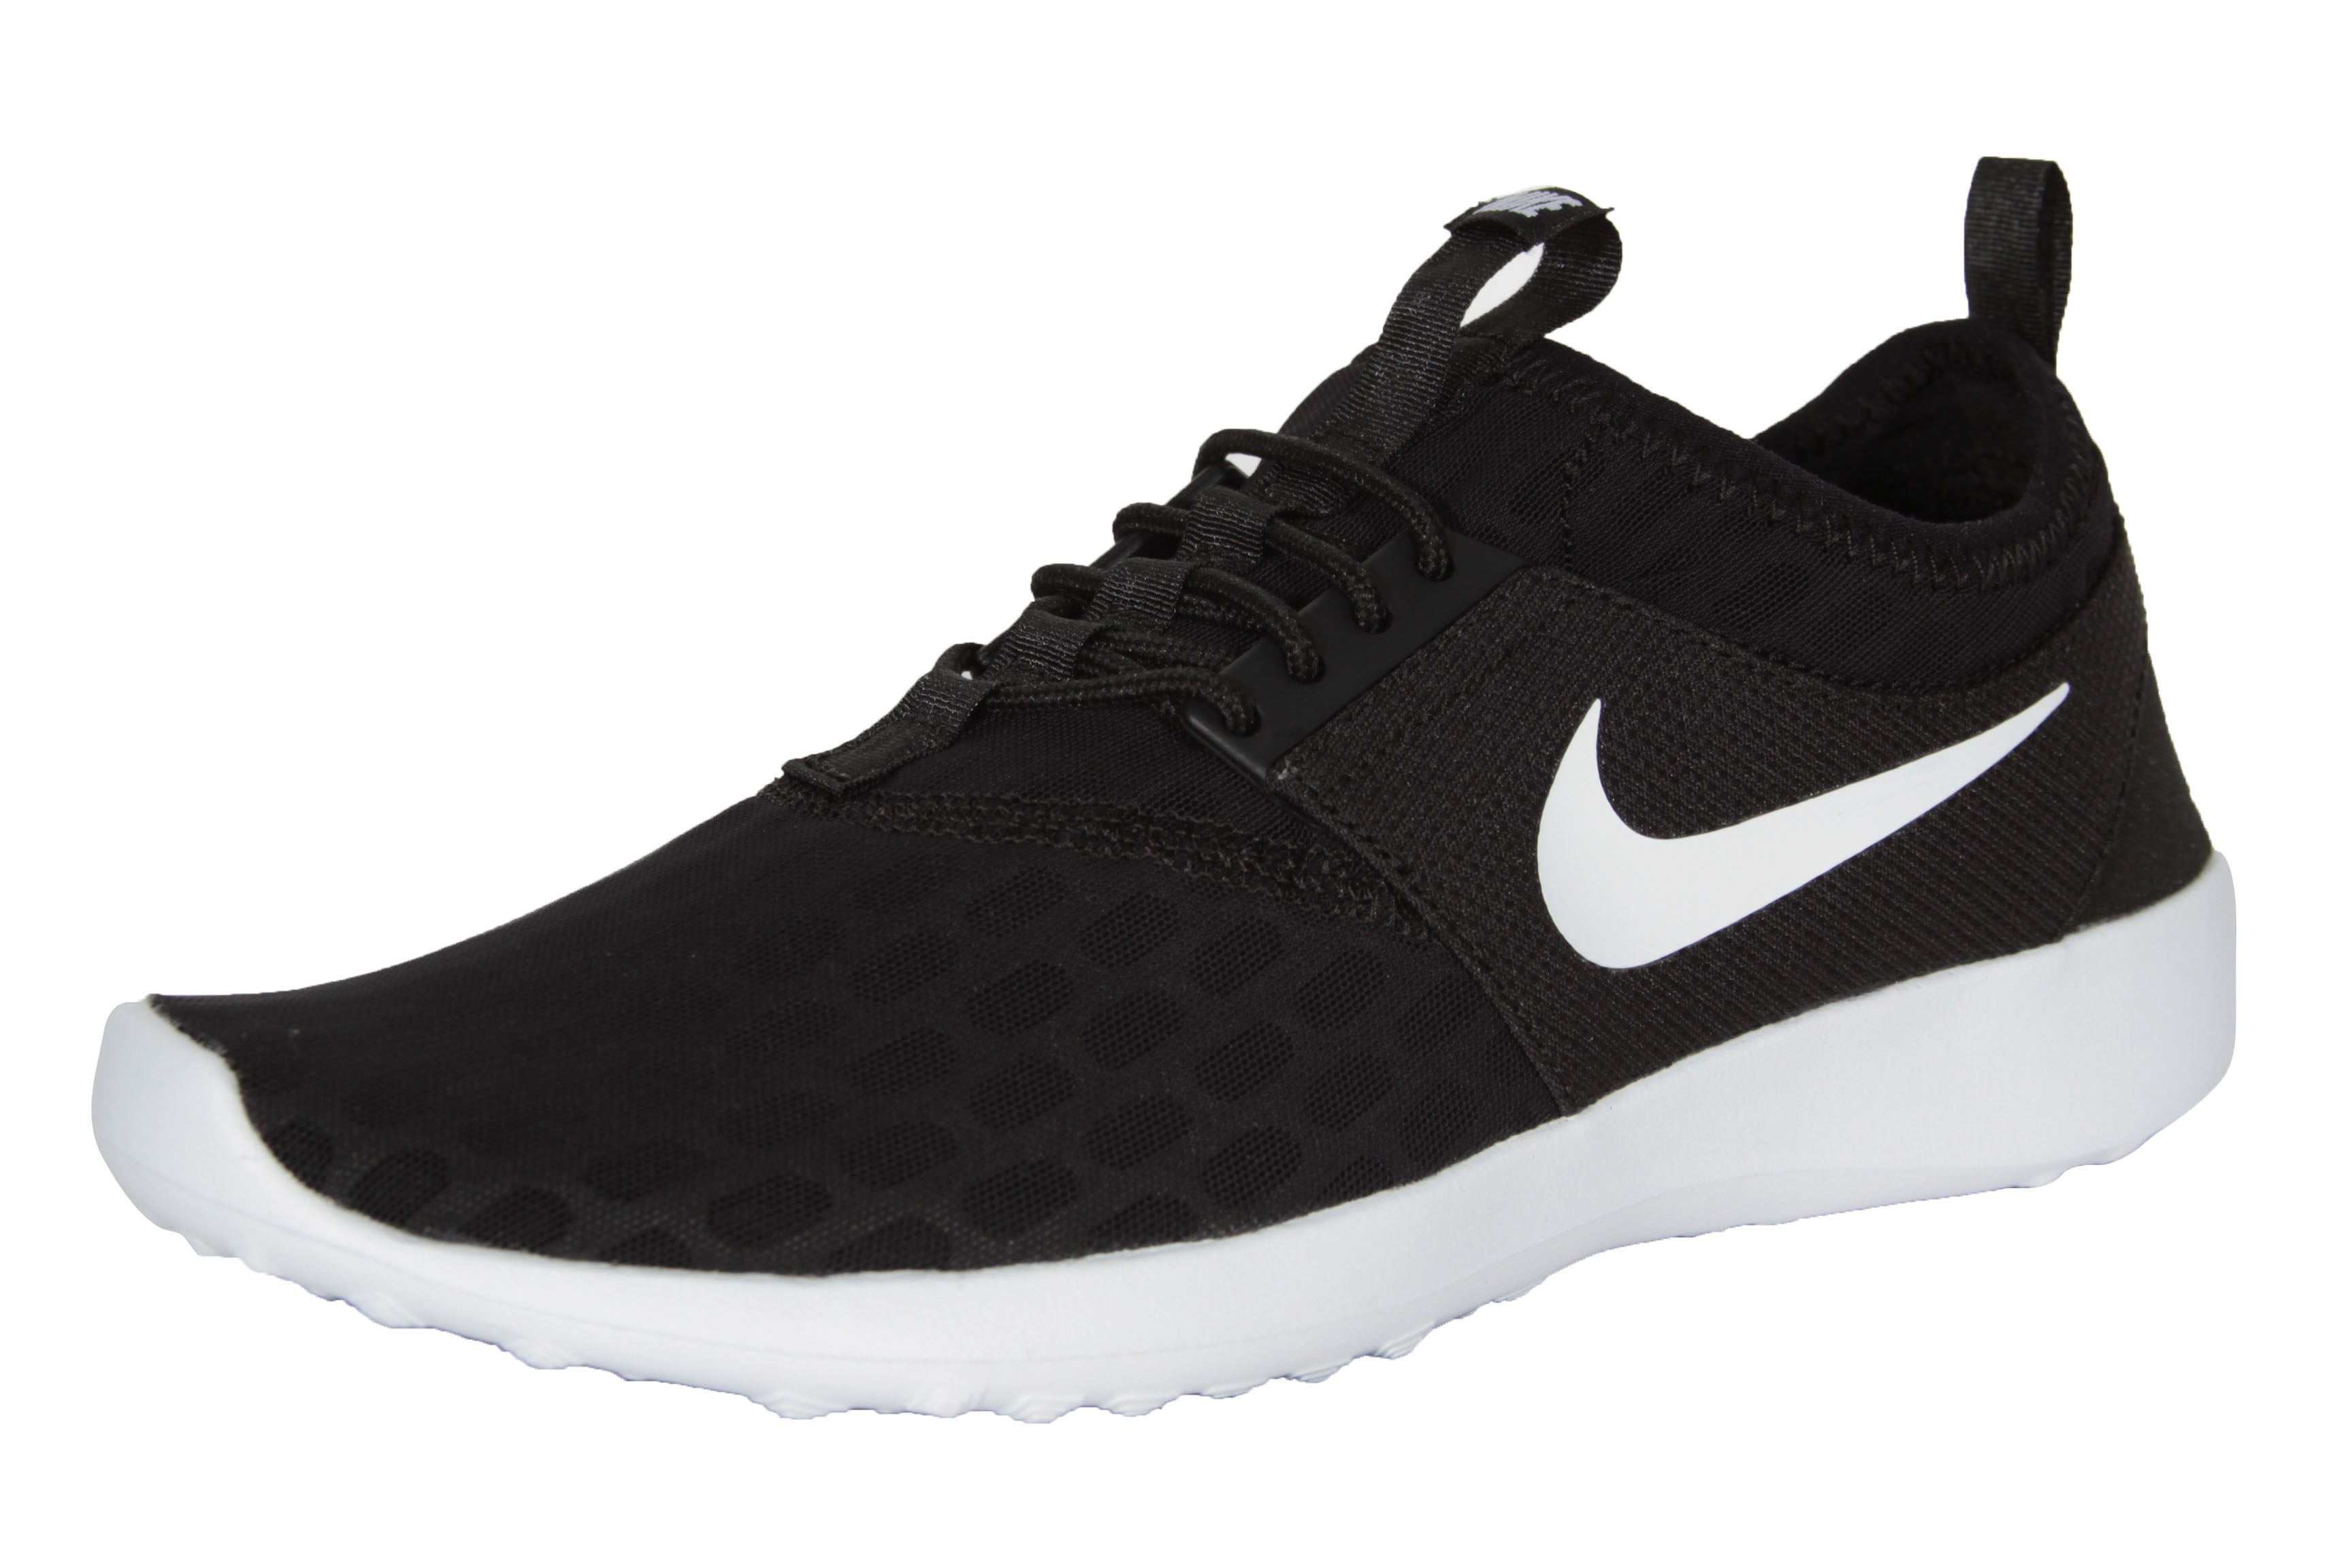 Women's Nike Juvenate Women's Running Shoes 724979-009